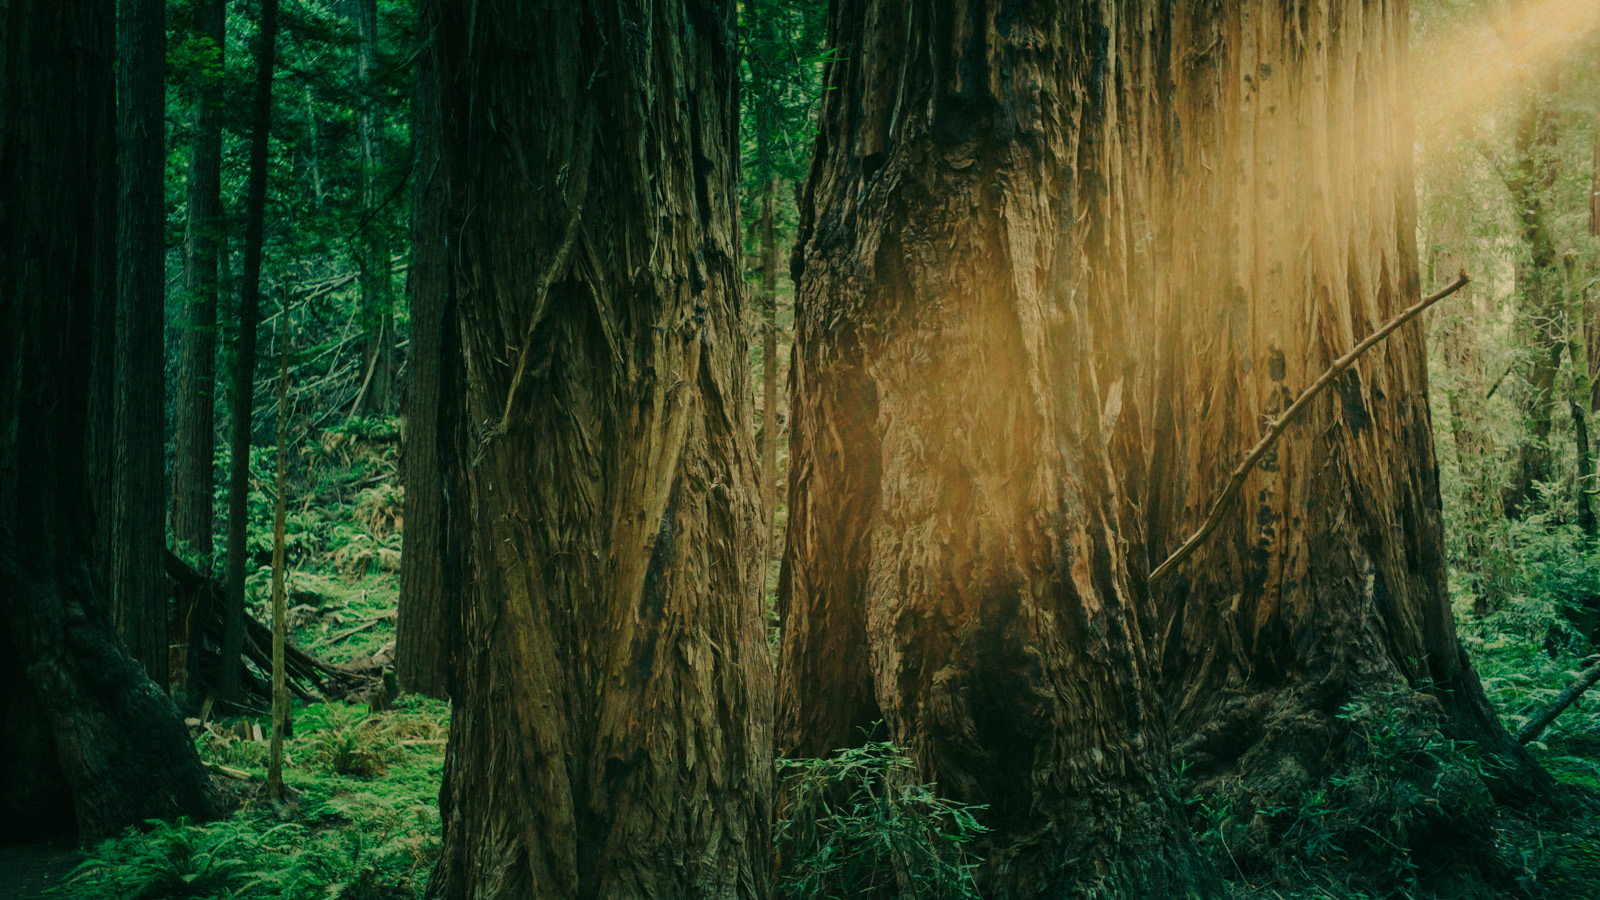 From one patch of green to the next, Muir Woods does outgrown them all.